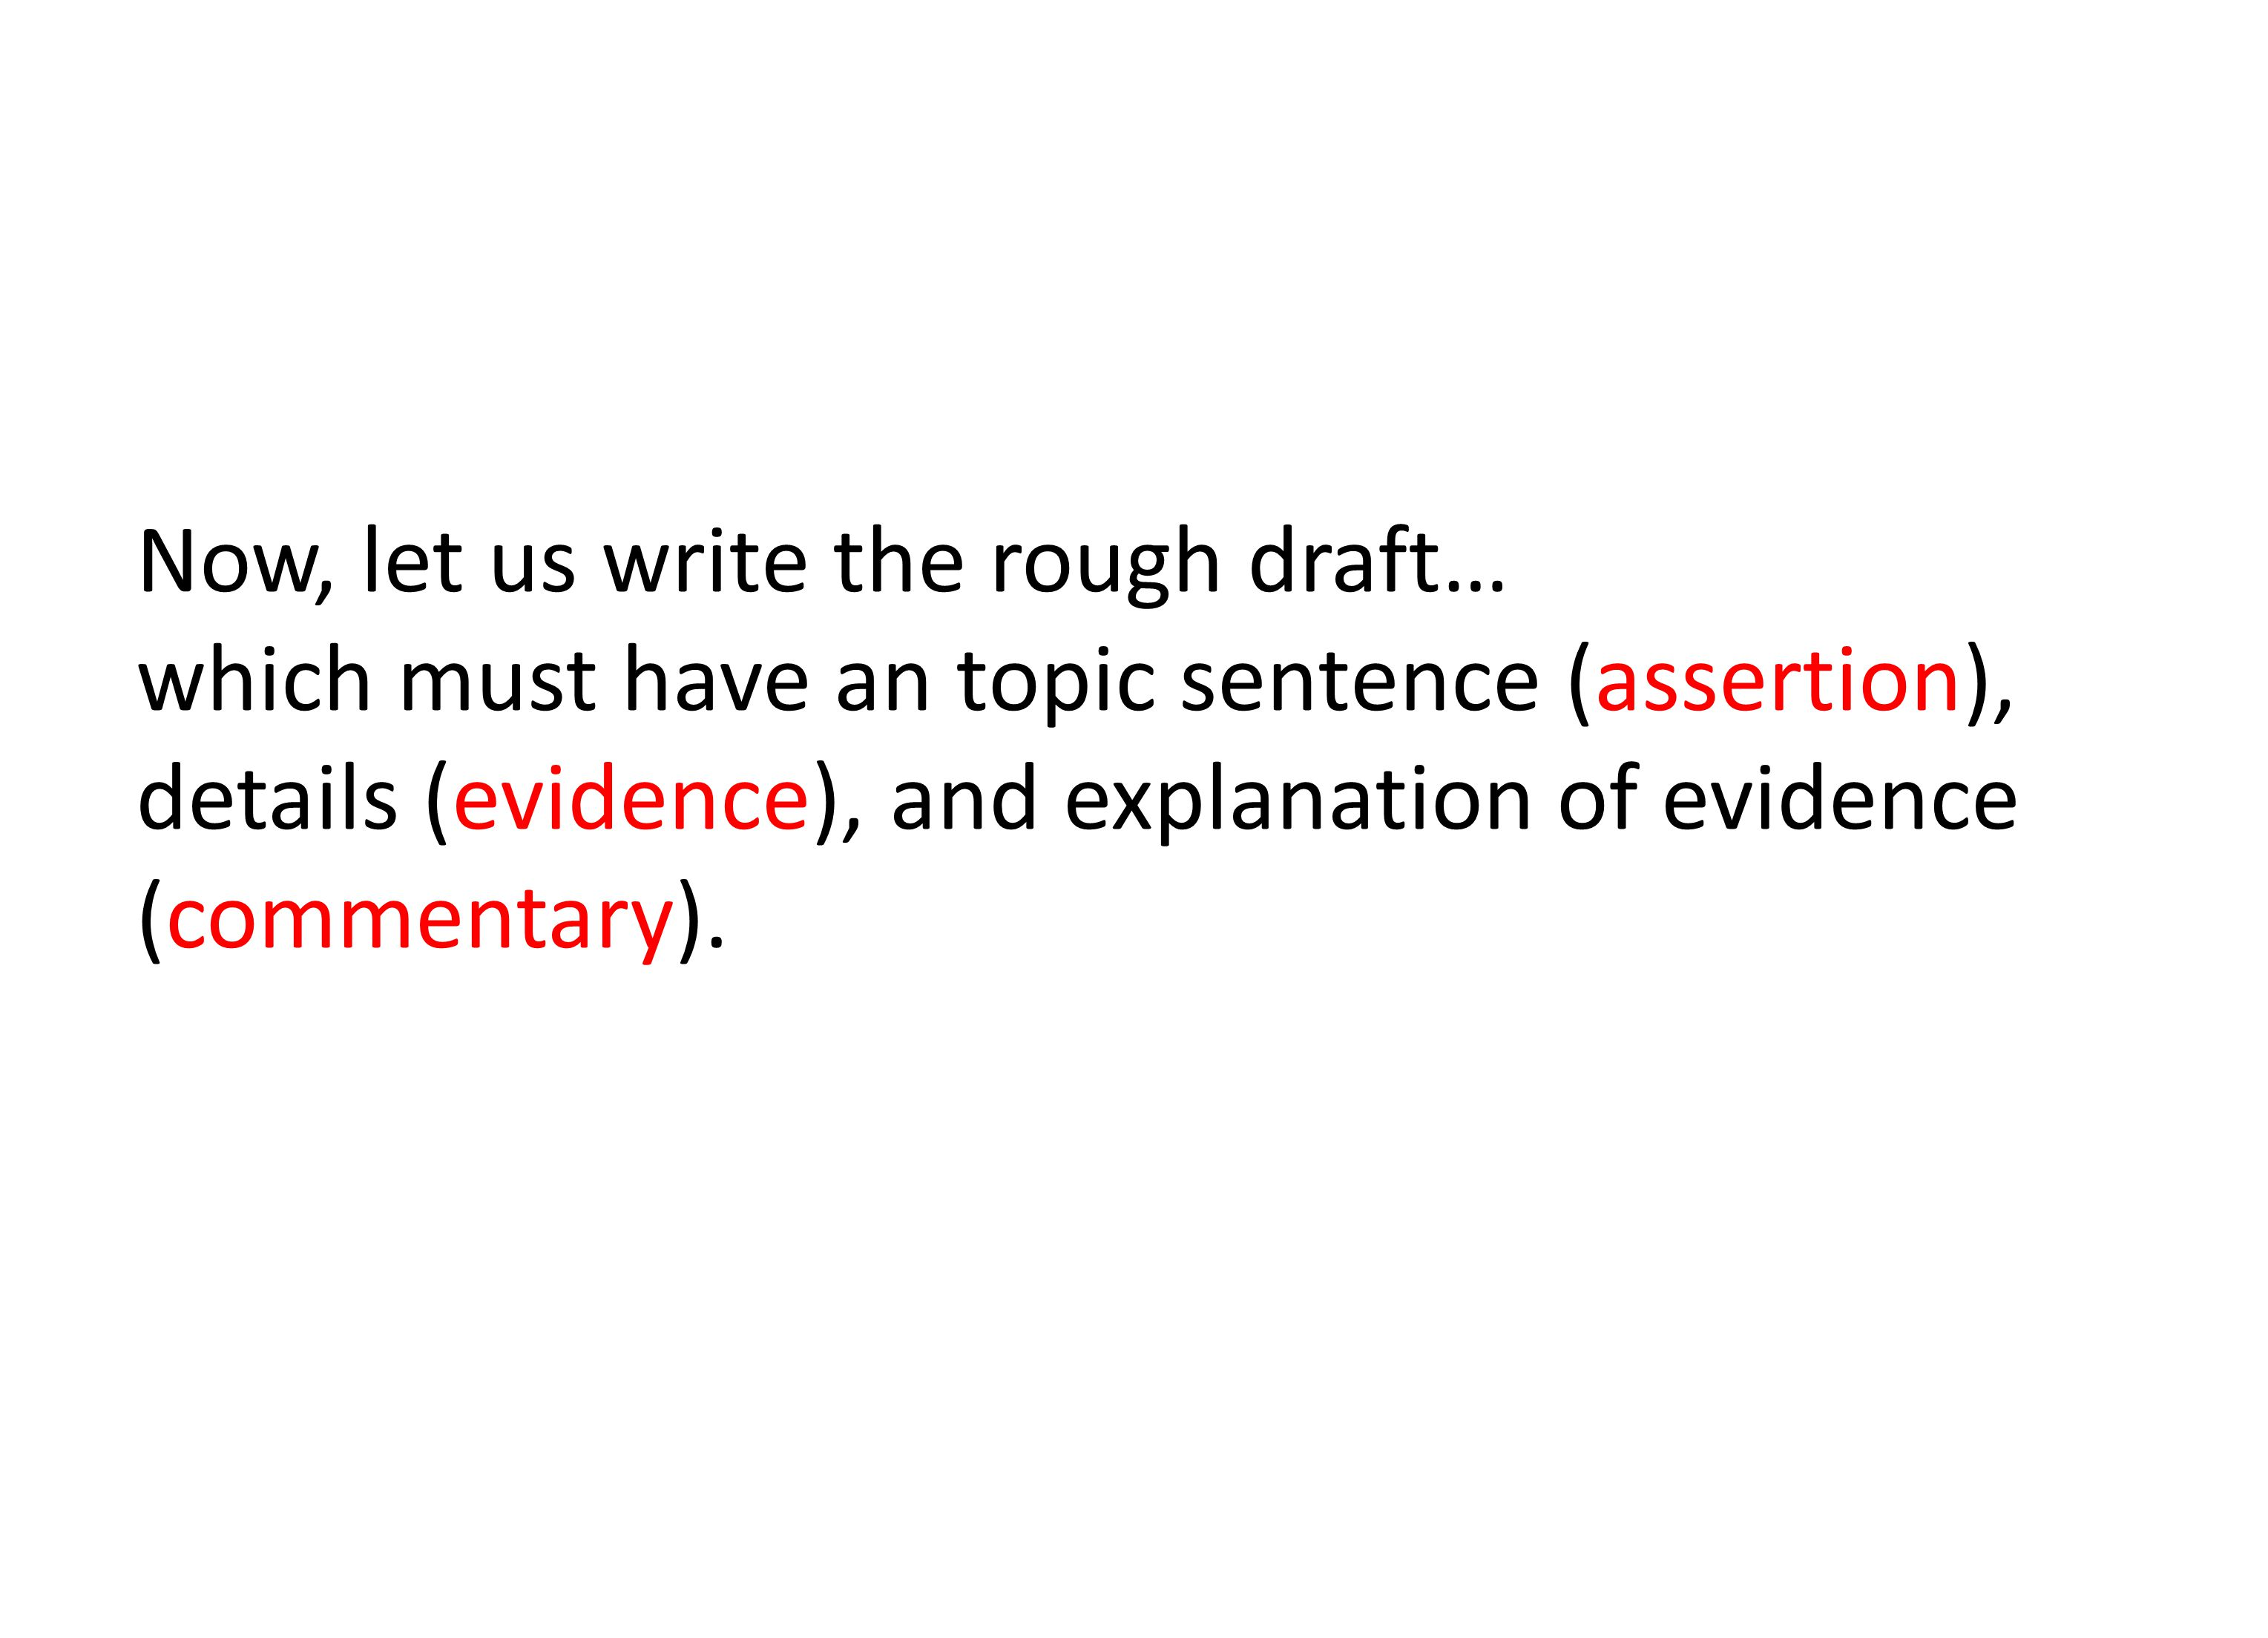 Now, let us write the rough draft… which must have an topic sentence (assertion), details (evidence), and explanation of evidence (commentary).